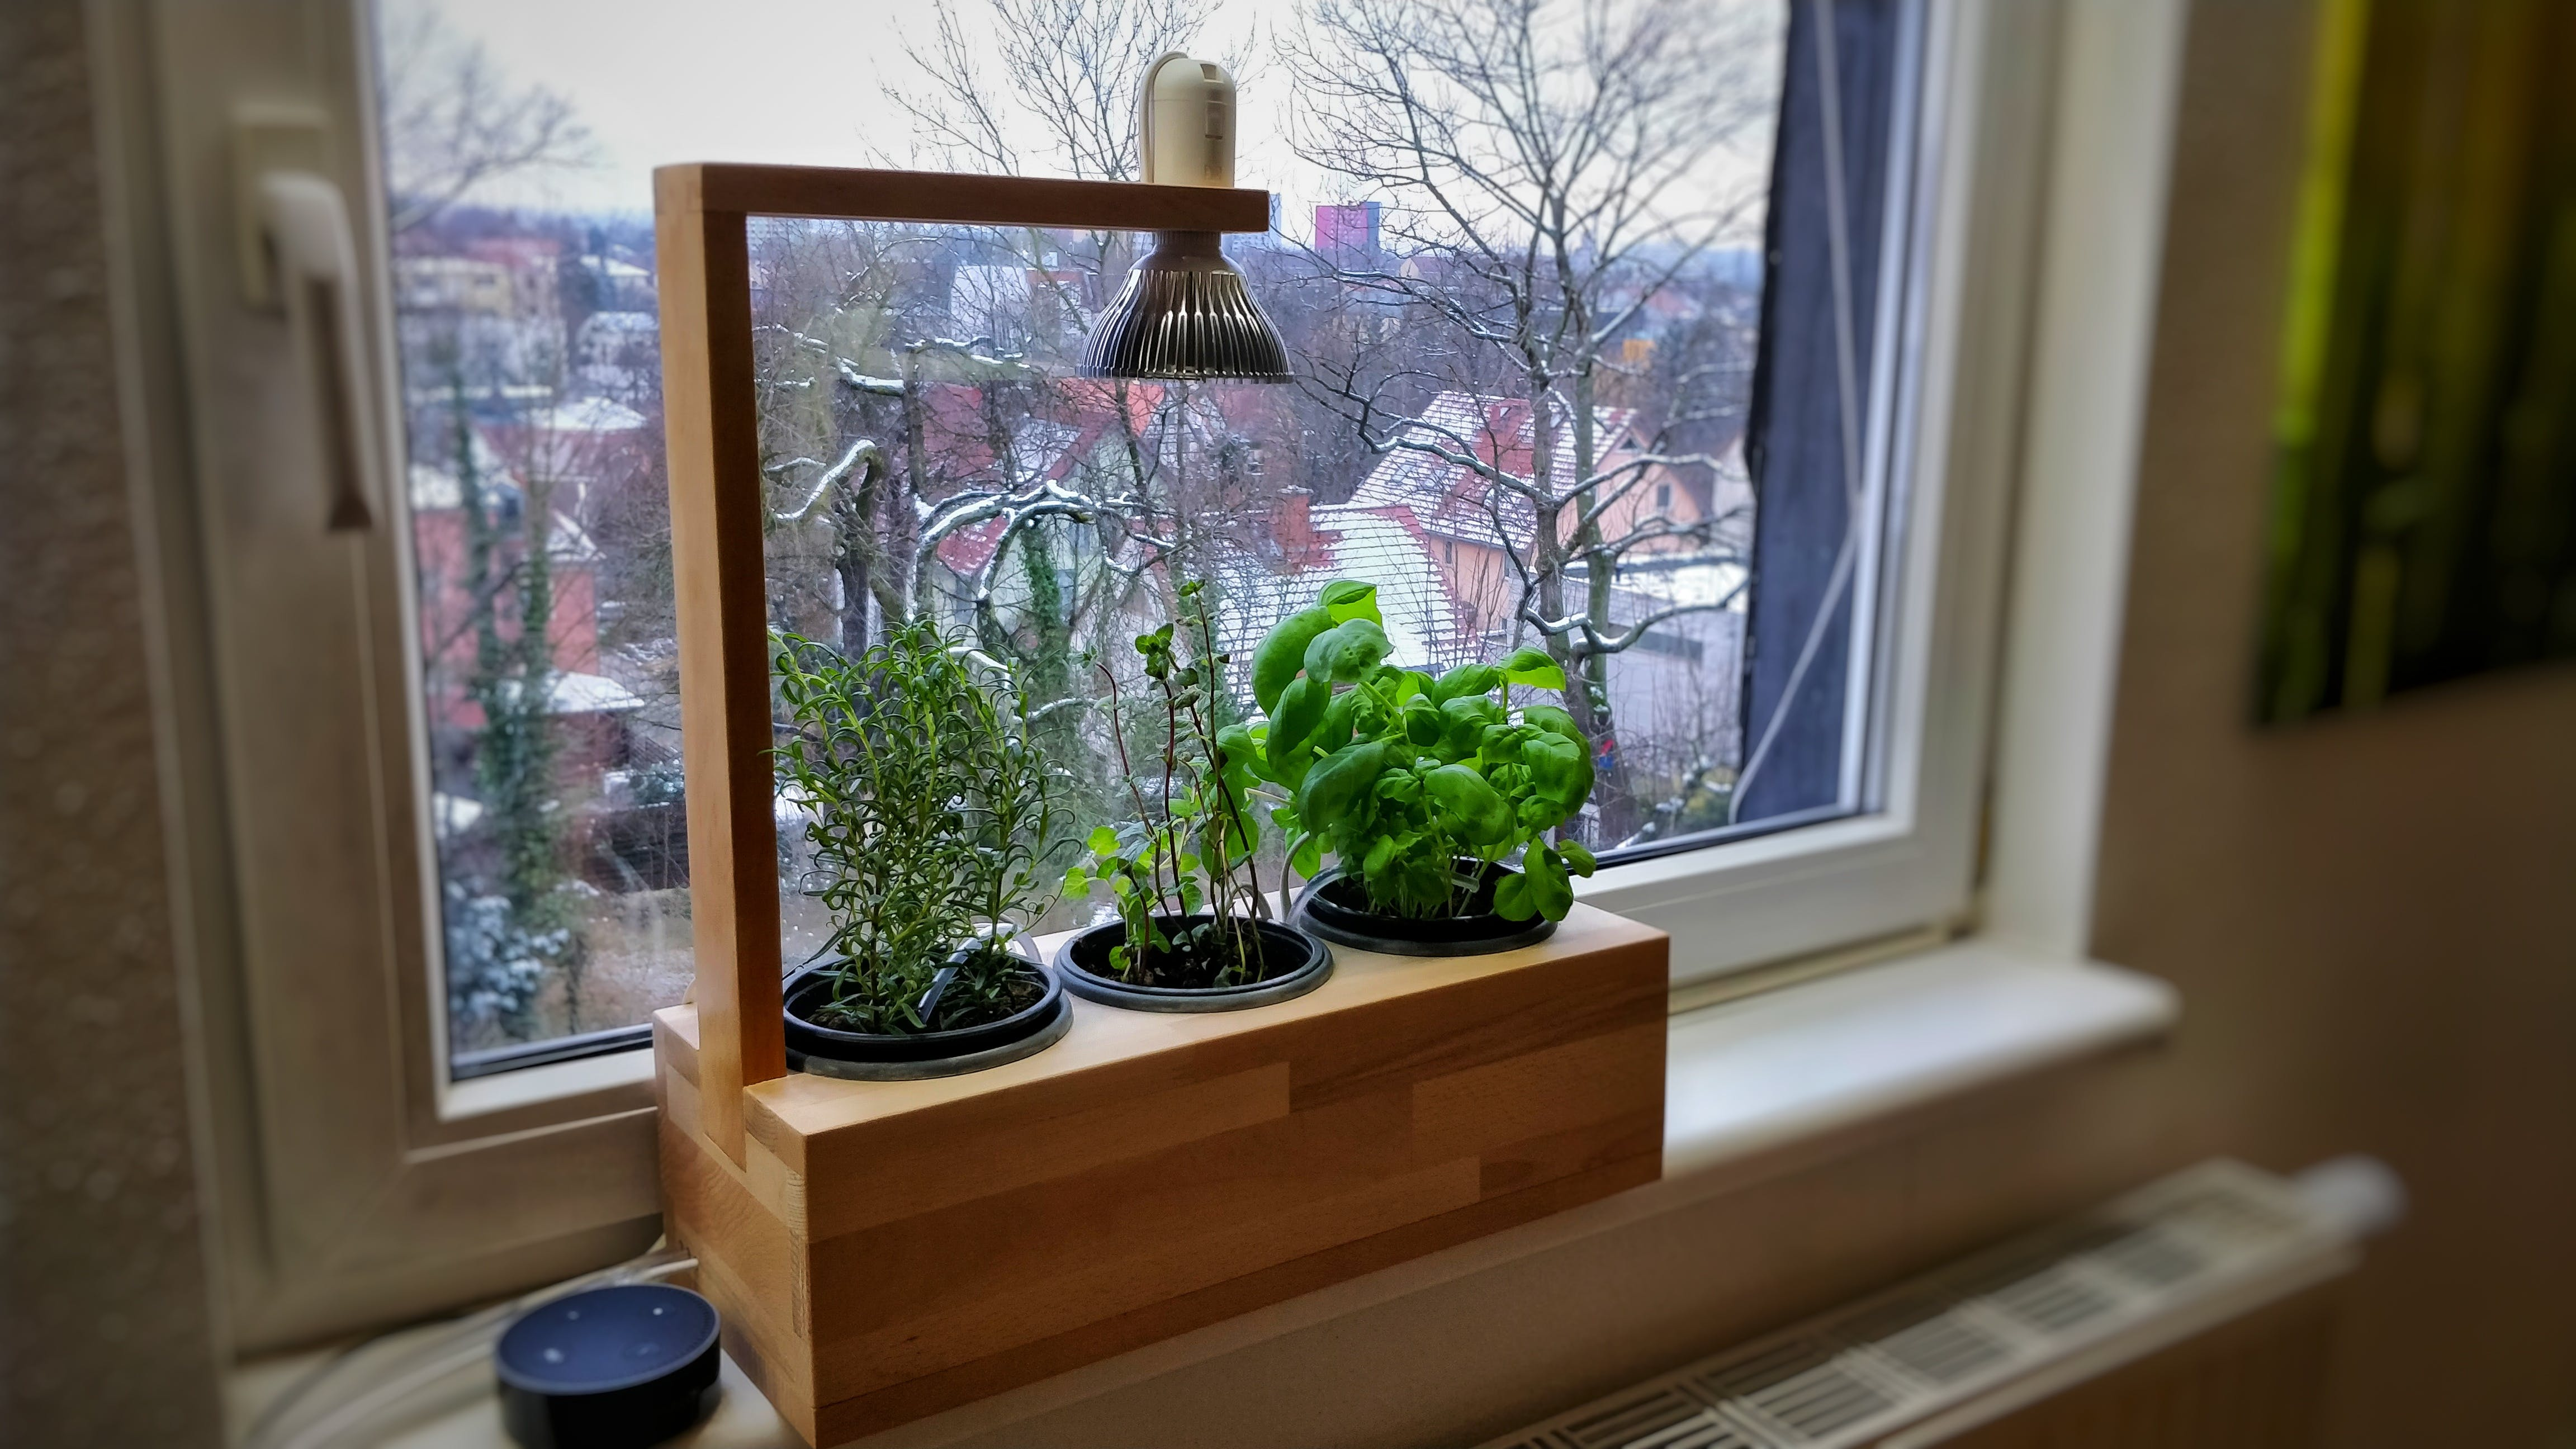 the herb box at my window